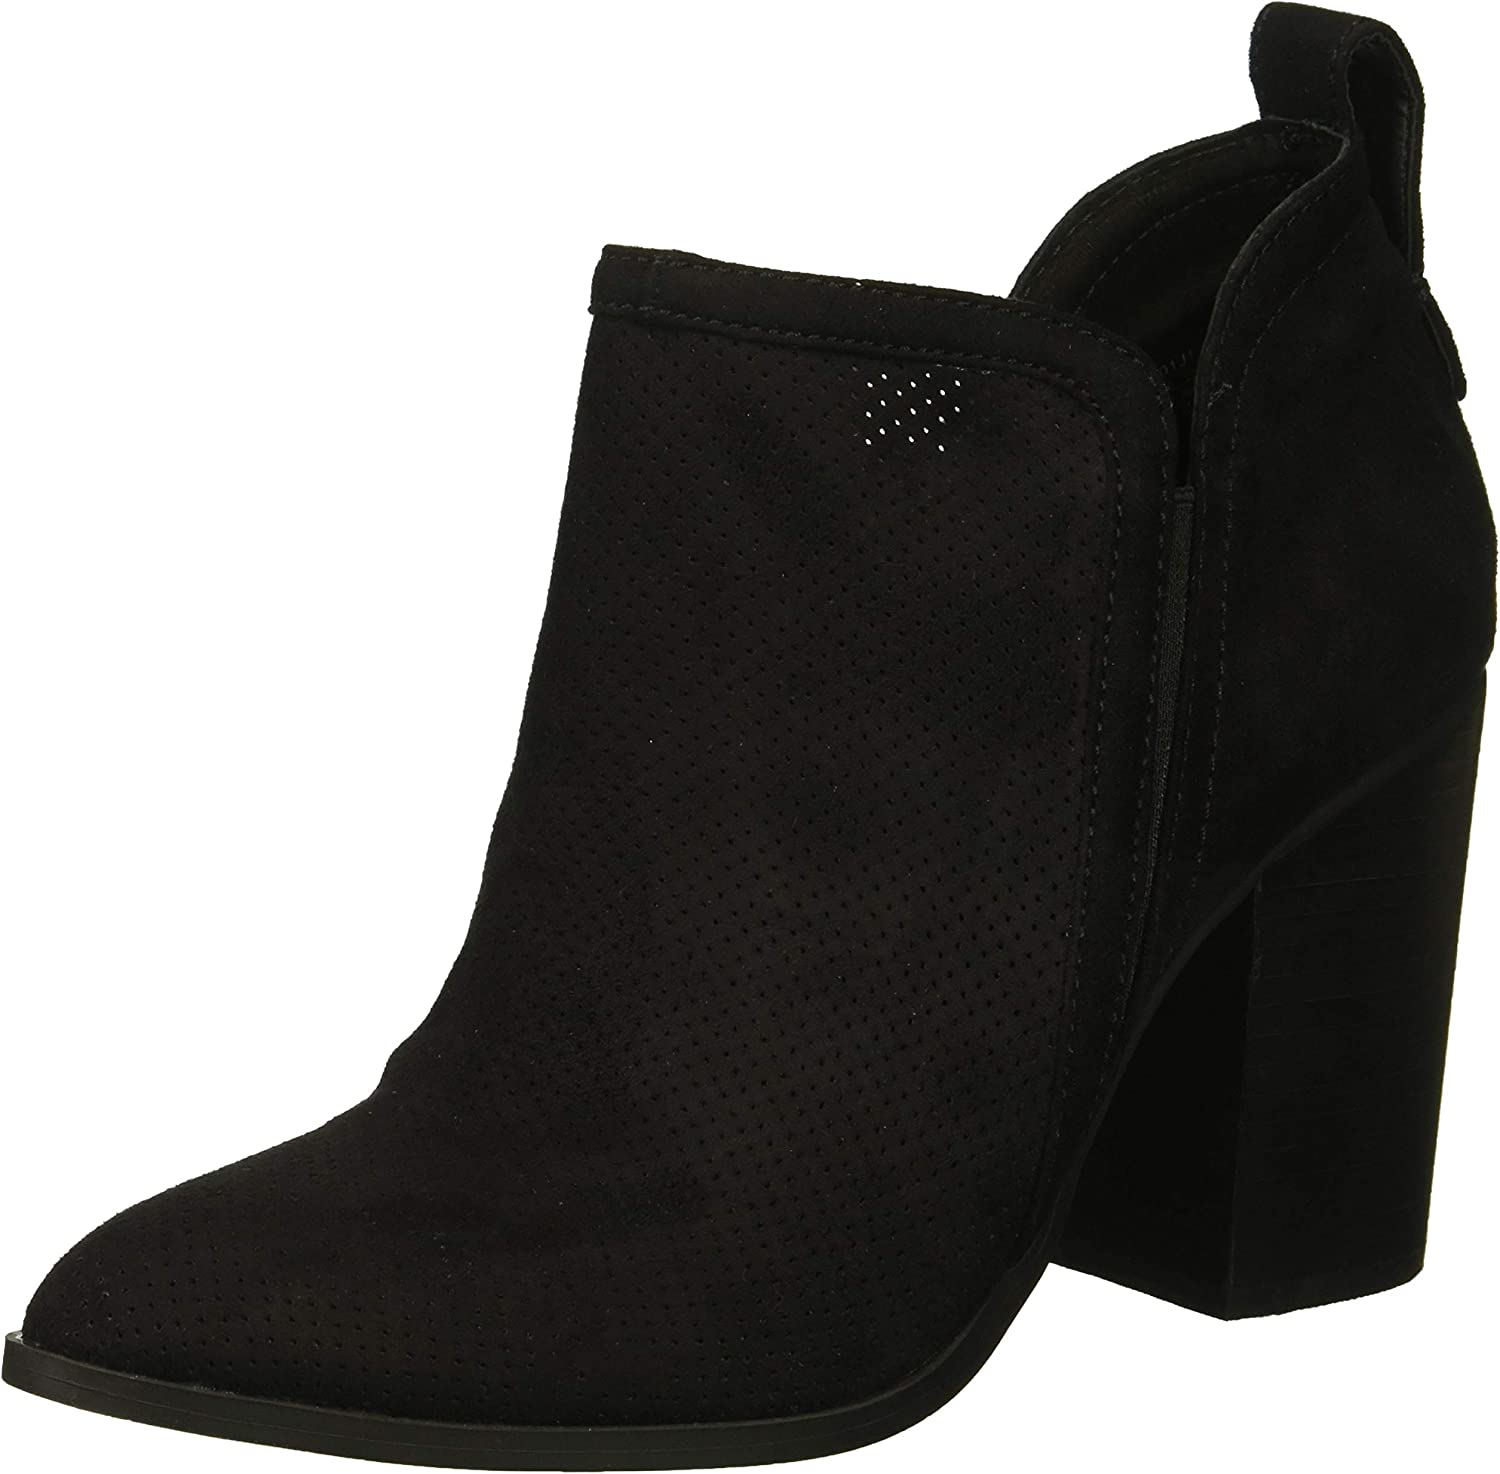 Madden girl Womens Miragee Ankle Boot